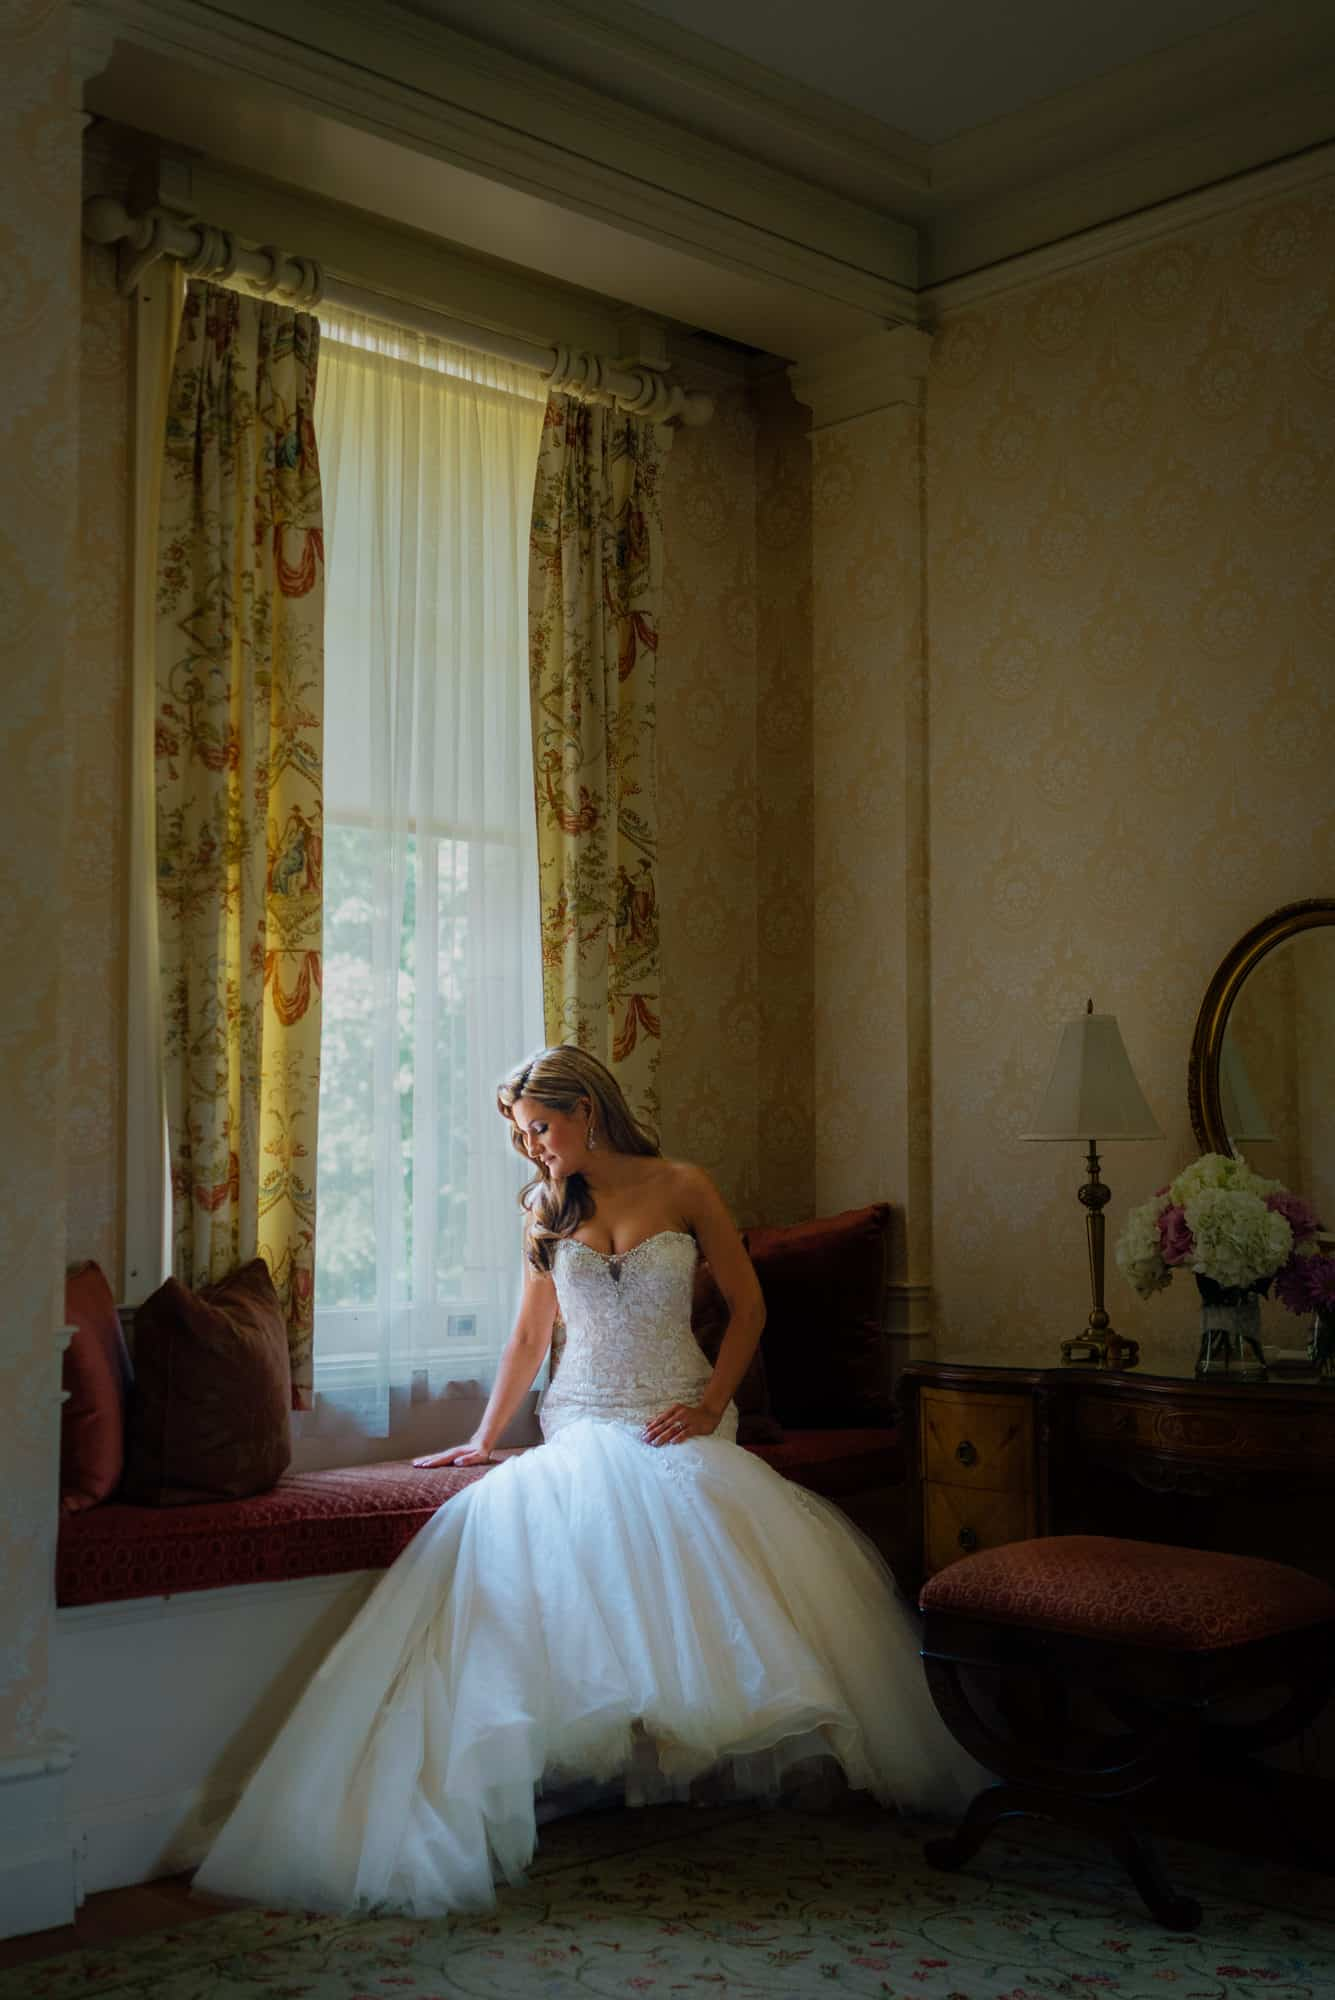 wedding dresses, bride sitting looking out window